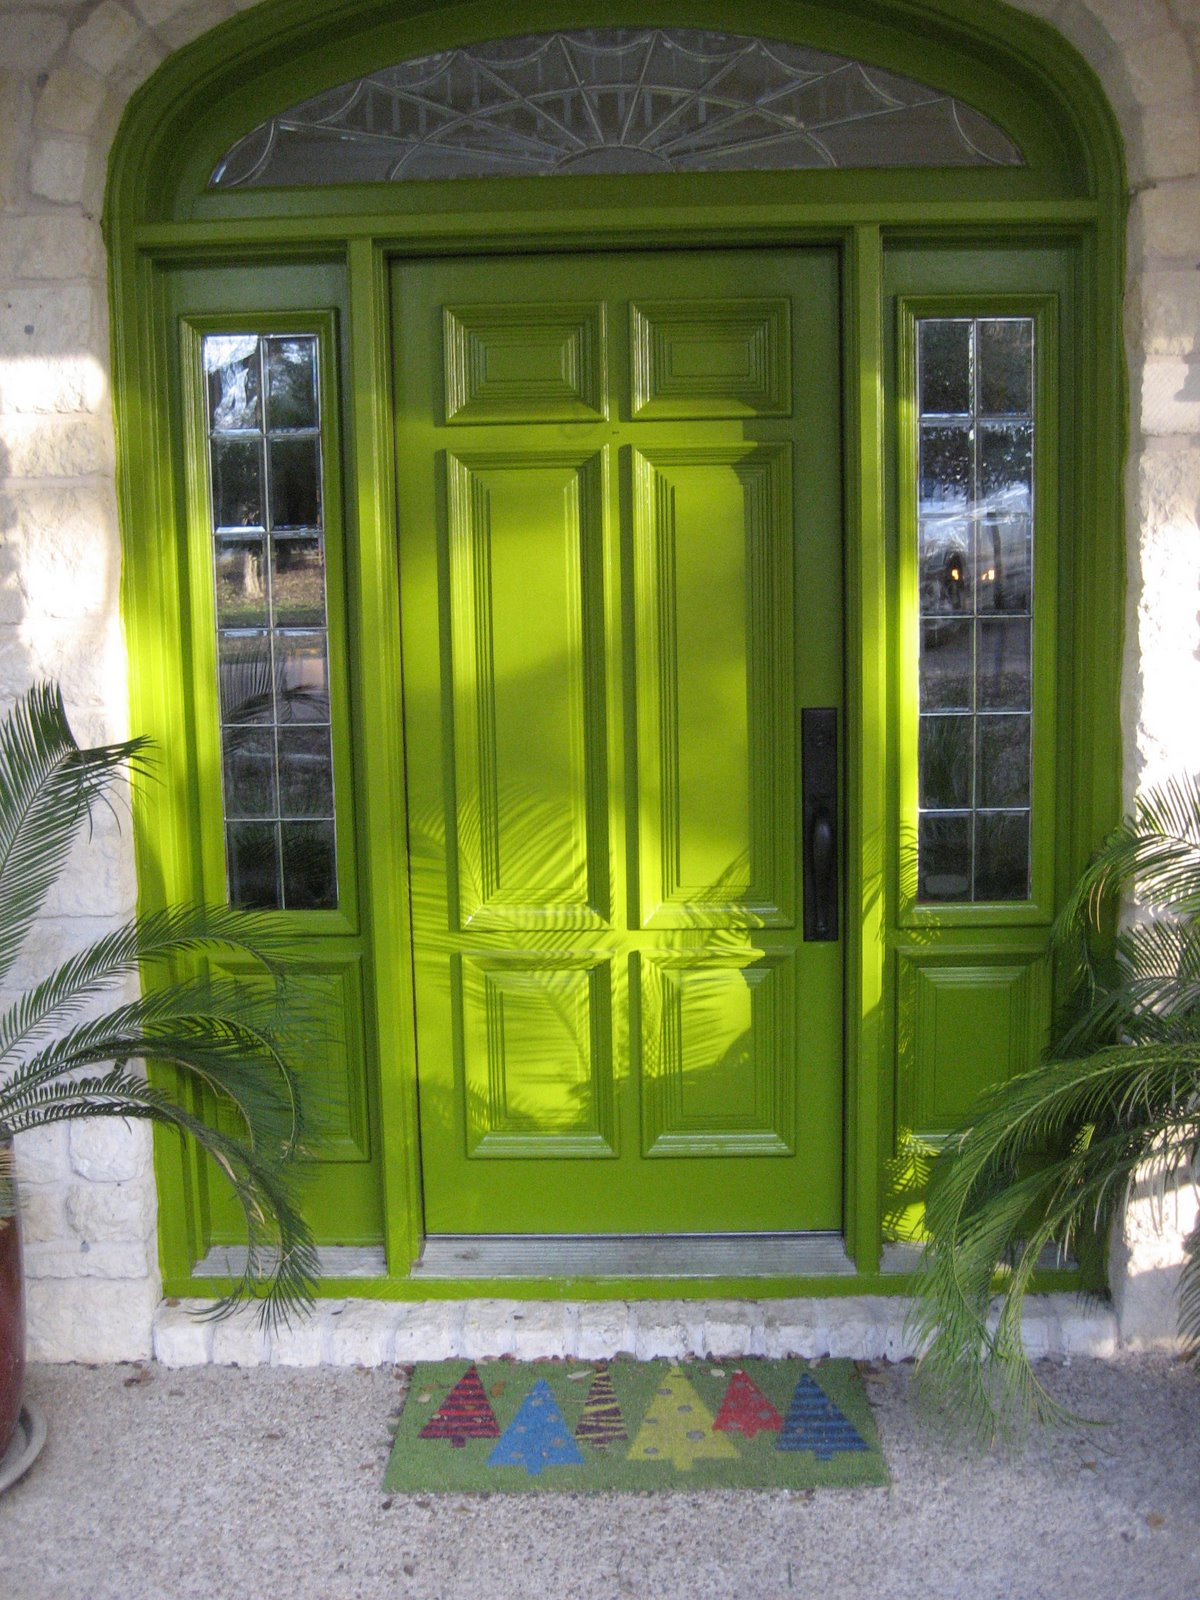 The fashion salad i love color - What color to paint front door ...